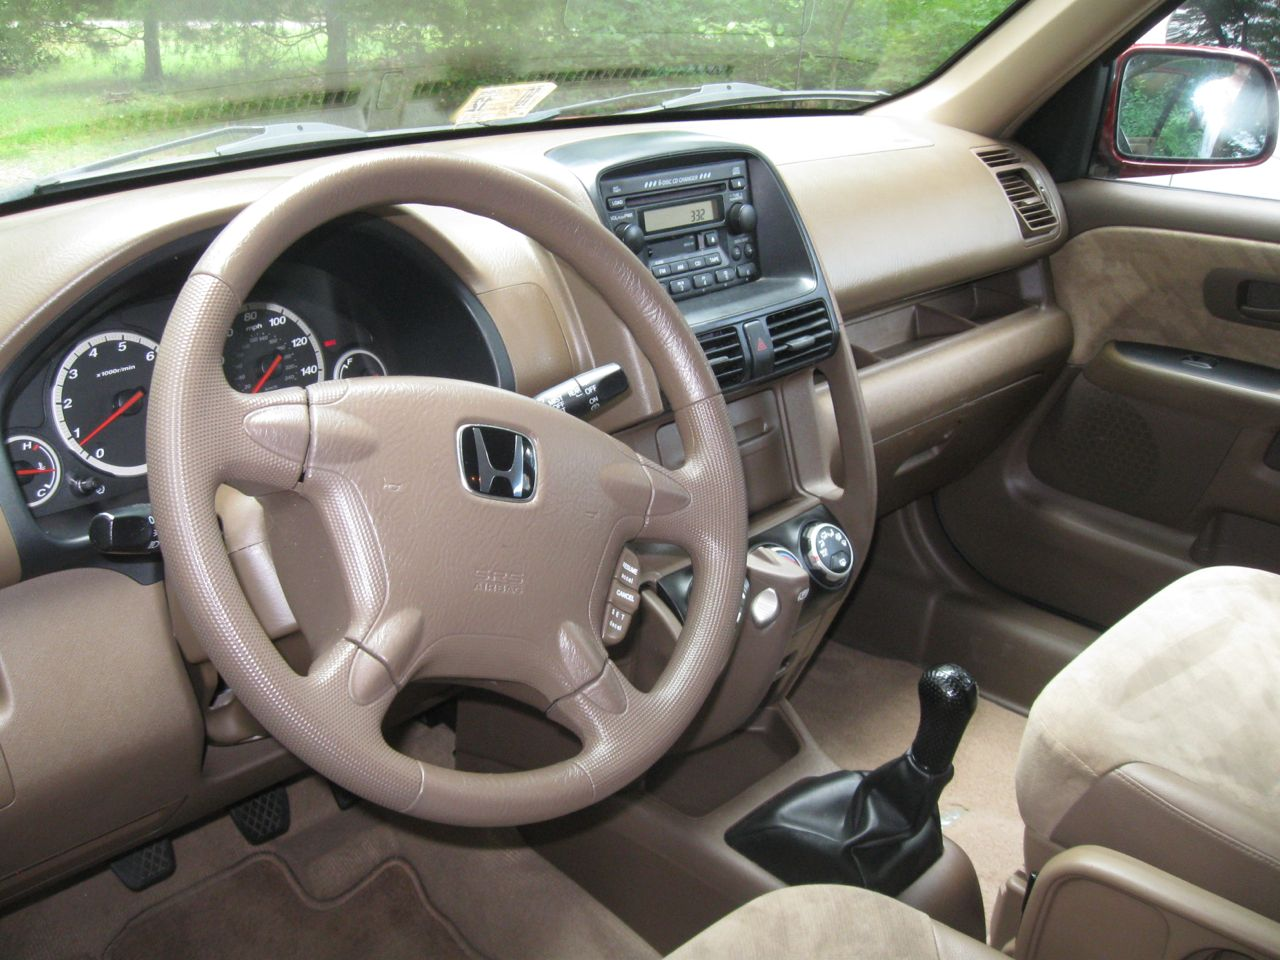 2003 Honda Cr V Interior Pictures Cargurus